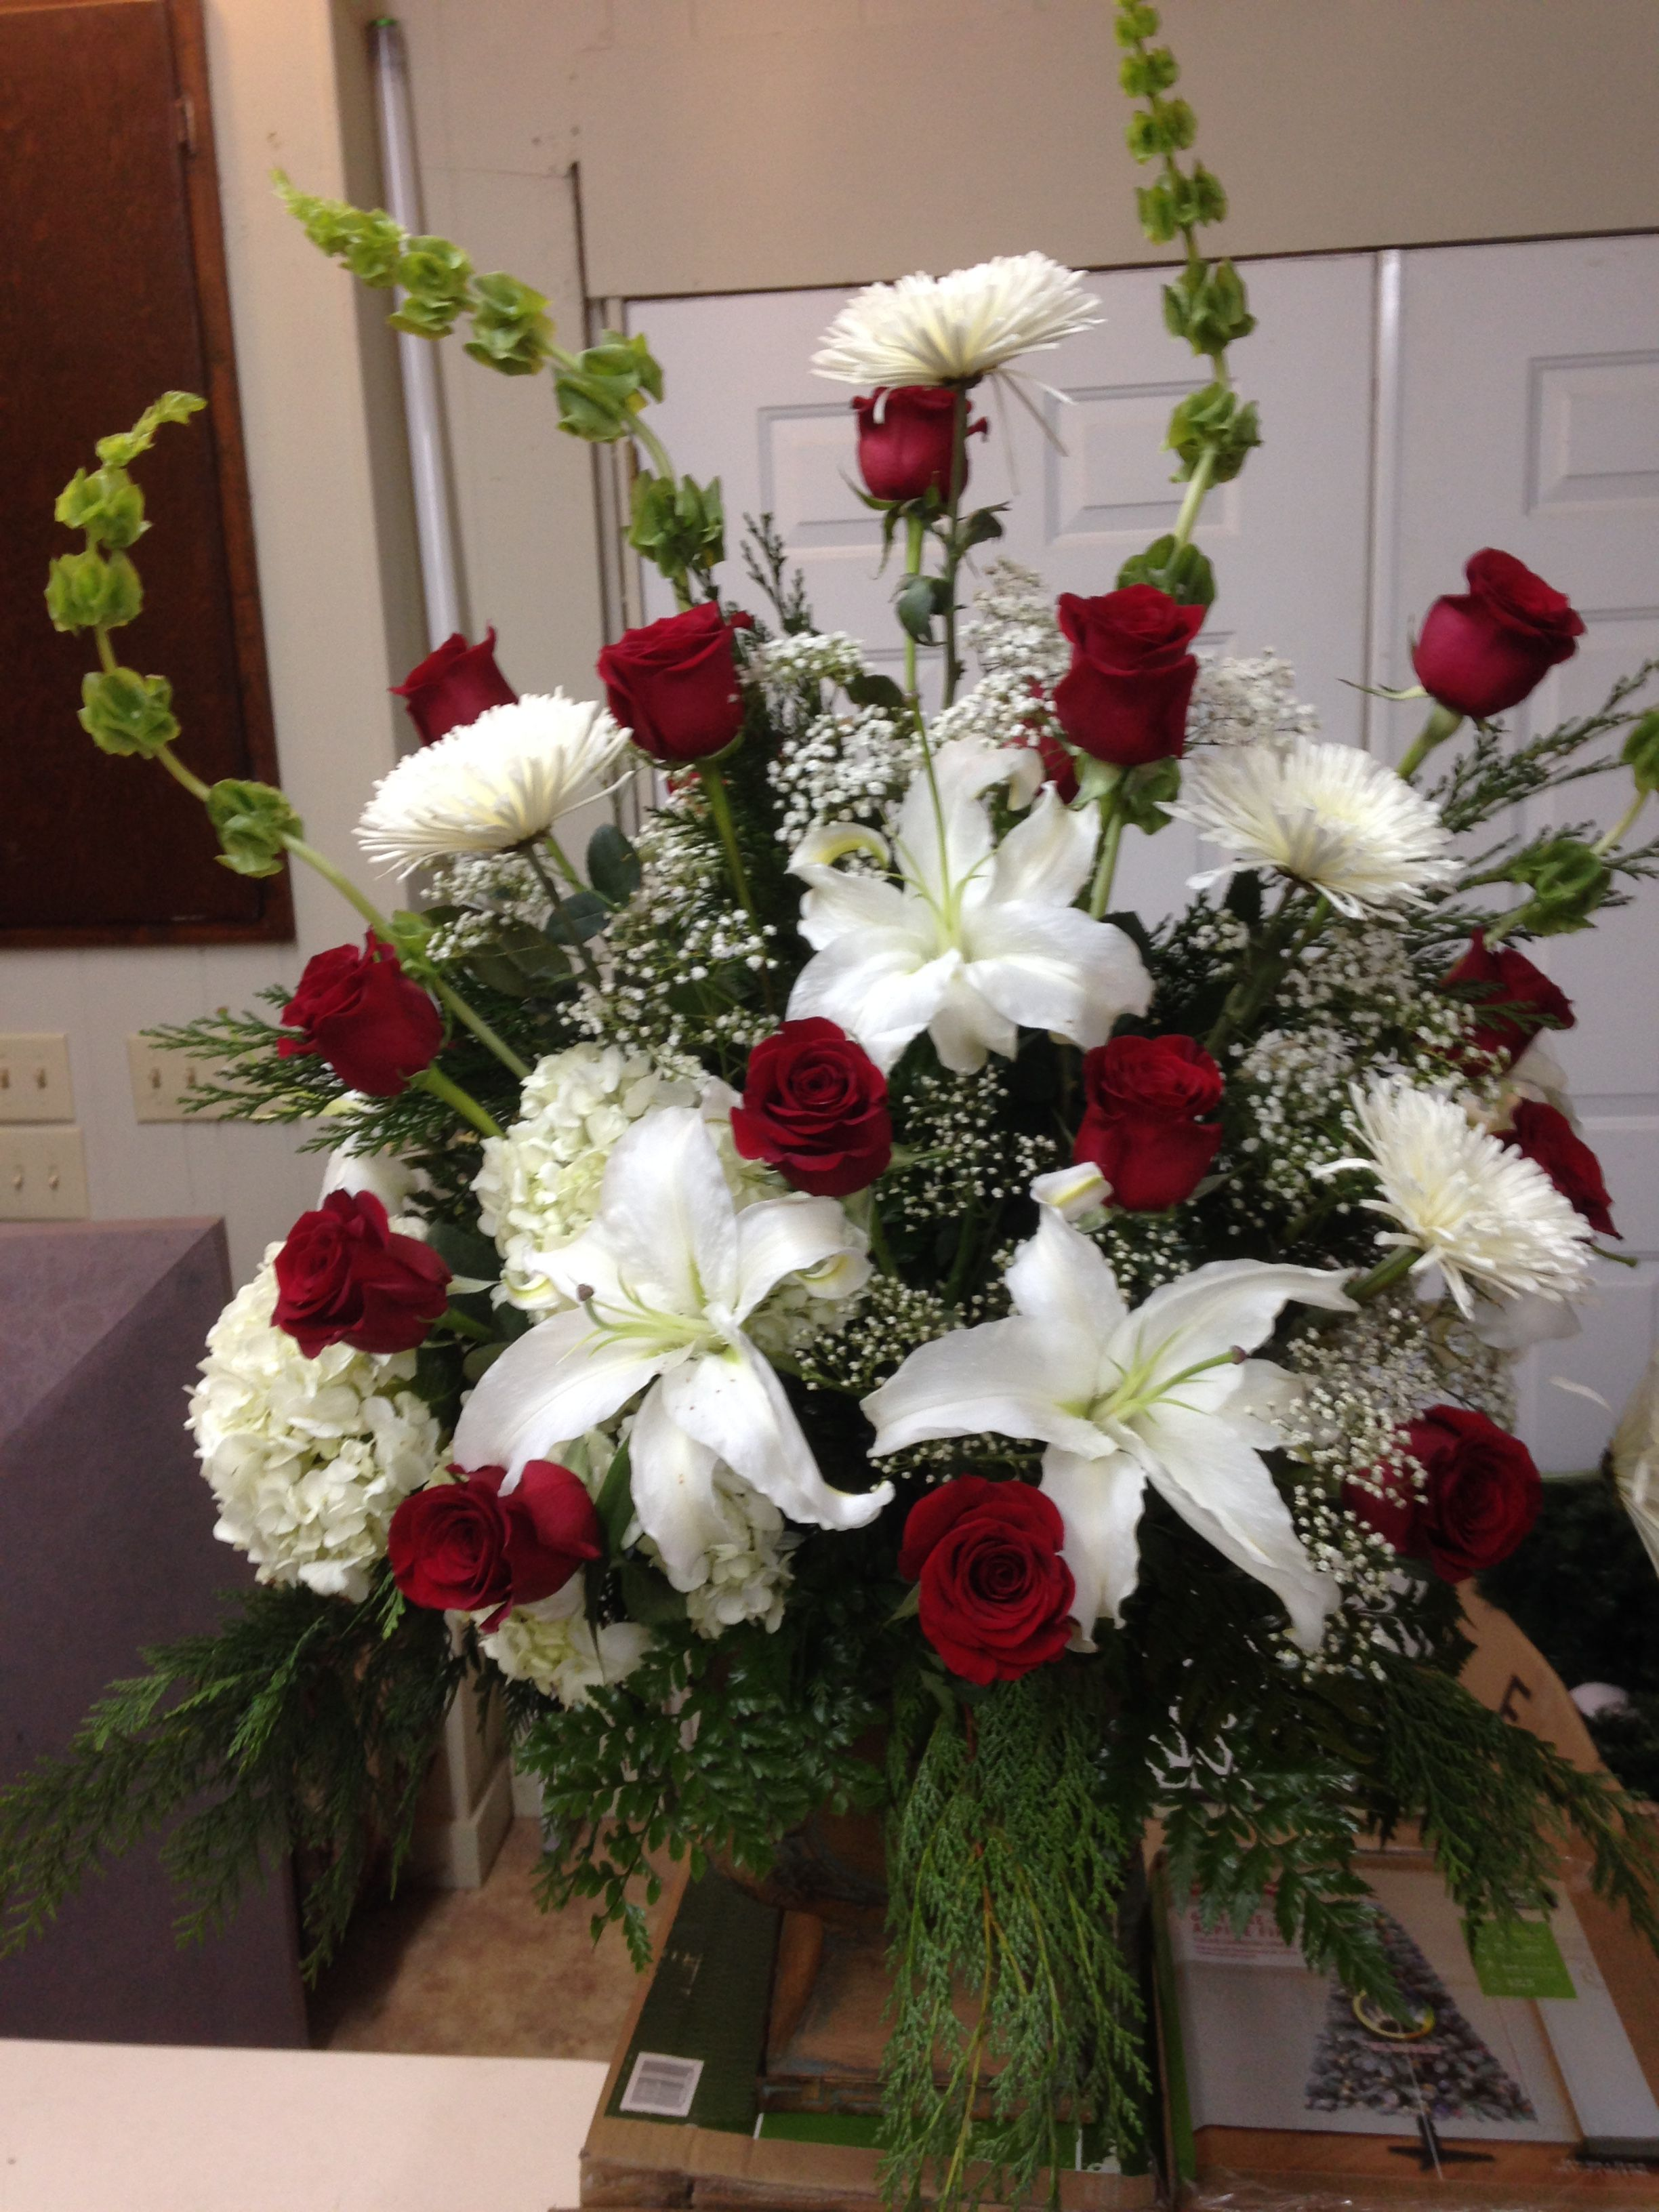 Holiday arrangements wholesale bulk flowers fiftyflowers - Fresh Church Arrangement Using Bells Of Ireland White Lilies White Hydrangeas White Spider